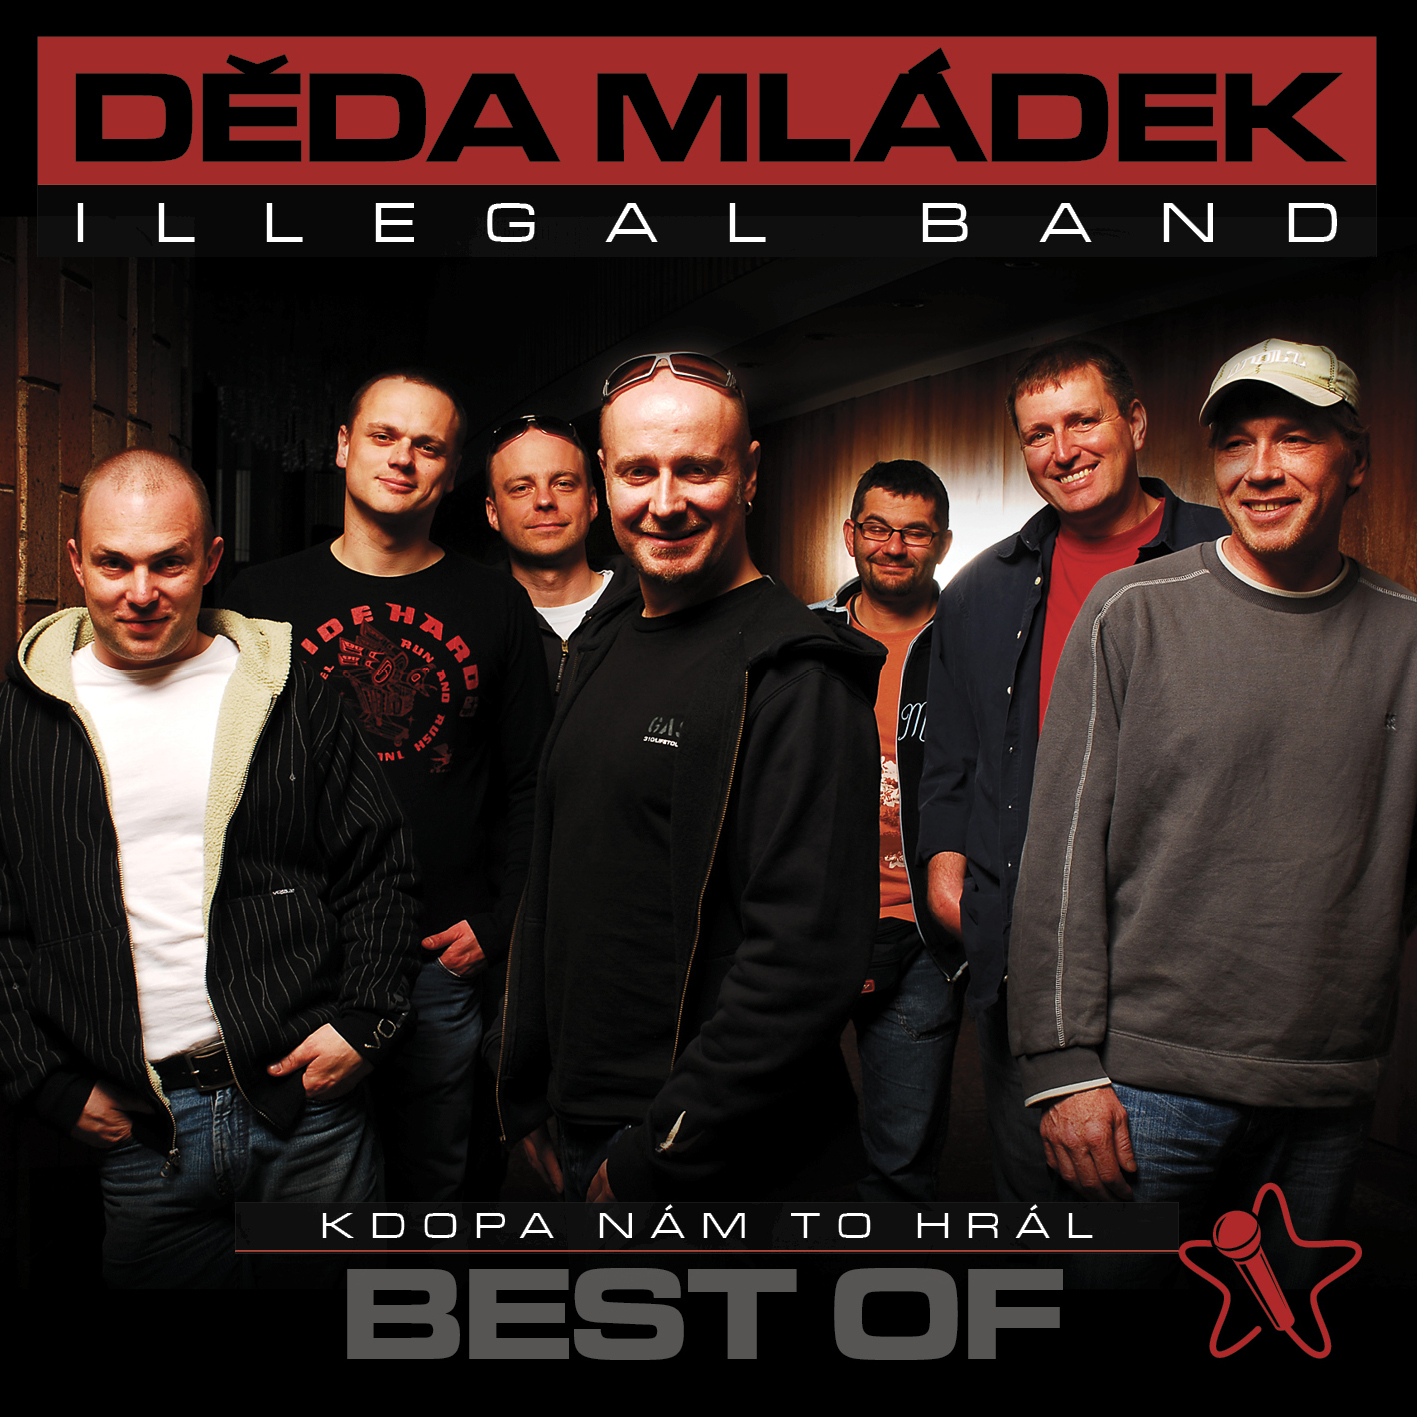 CD Shop - DEDA MLADEK ILLEGAL BAND KDOPA NAM TO HRAL (Best of + bonusy + karuzoshow)